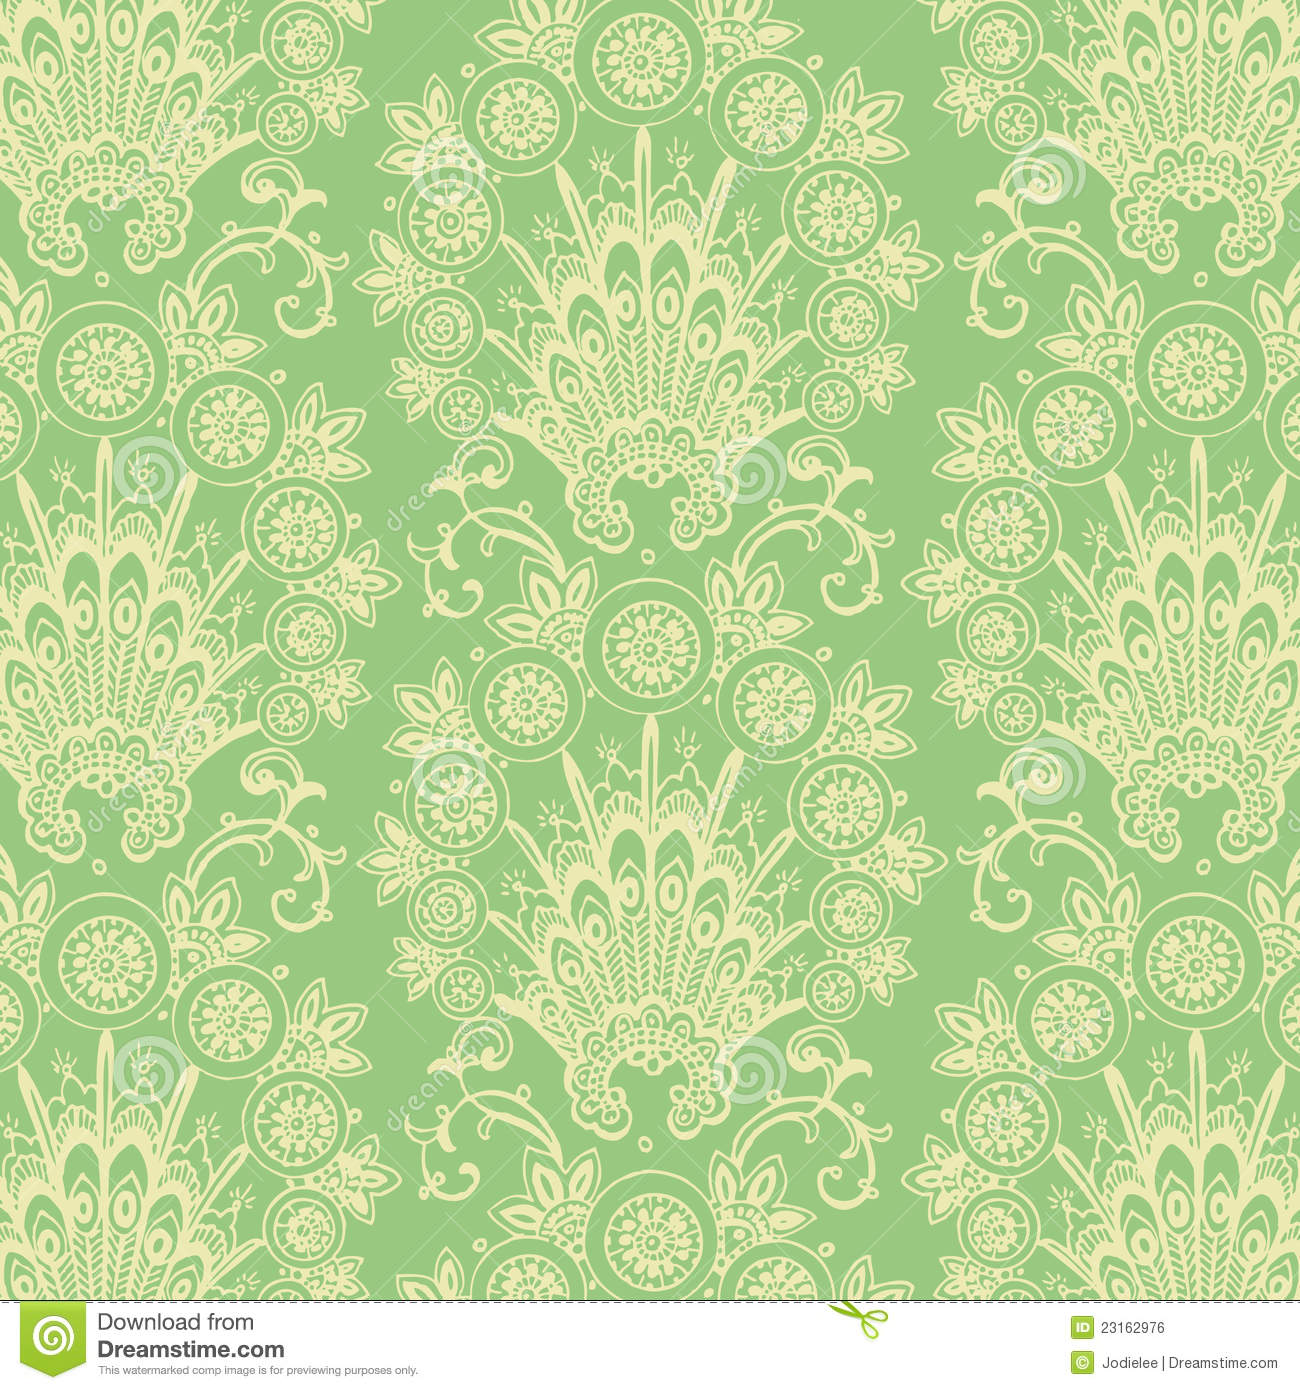 Images Of Green Vintage Backgrounds